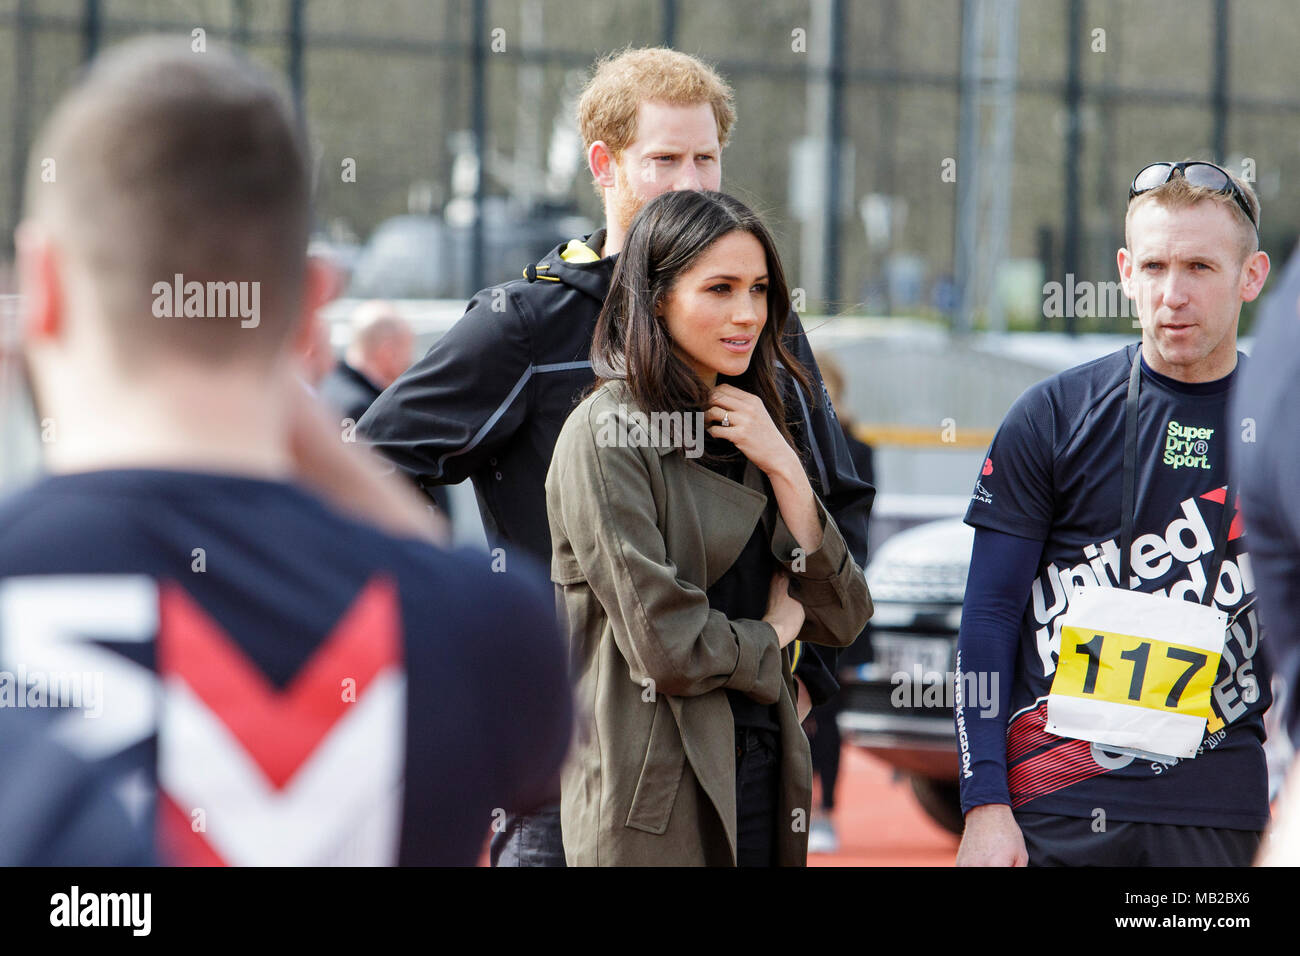 Bath, UK. 6th April, 2018. Prince Harry and Meghan Markle are pictured as they talk to Athlete's at the University of Bath Sports Training Village during his visit to the UK team trials for the 2018 Invictus Games. The games are a sporting event for injured active duty and veteran service members, 500 competitors from 18 nations will compete in 11 adaptive sports in this year's Invictus Games which will be held in Sydney, Australia in October 2018. Credit: lynchpics/Alamy Live News Stock Photo